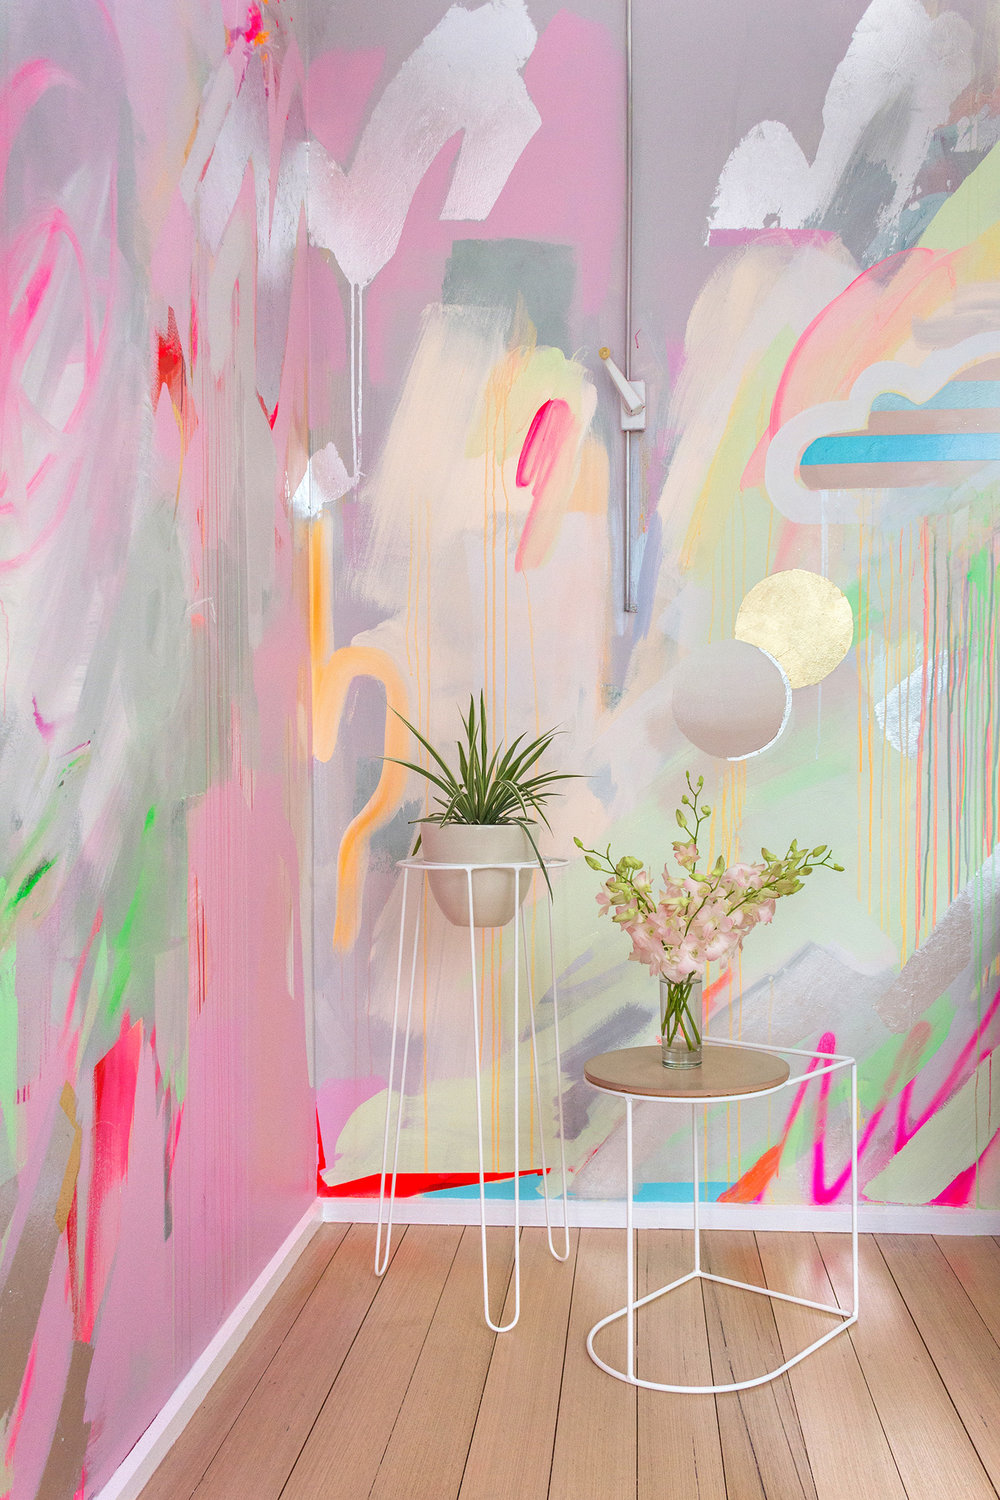 Vibrant abstract mural in pink, green and pastel colours, features silver metallic leaf shapes which create reflective surfaces. Painted motifs include a striped cloud and cactus. In front of the mural are two Ivy Muse plant stands that have been styled with plant life.